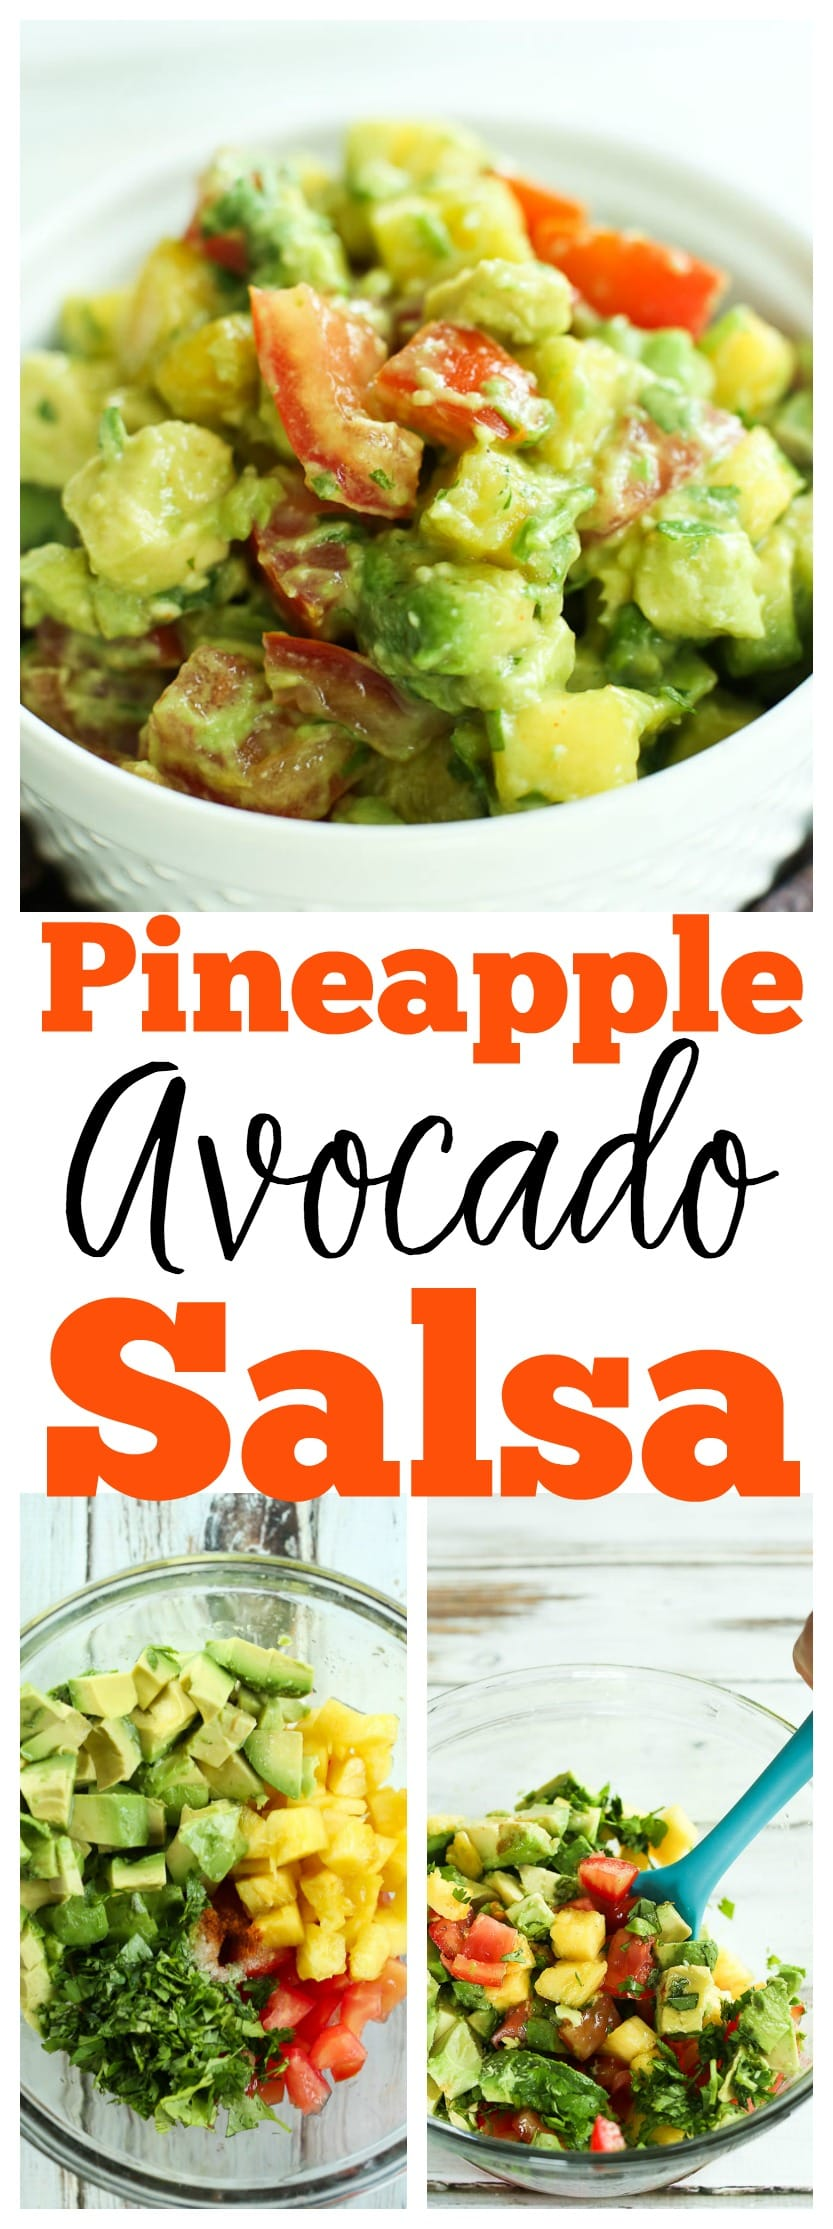 Pineapple Avocado Salsa Recipe | healthy, gluten-free, vegan salsa that is fantastic on everything from veggie burgers to chicken to fish!